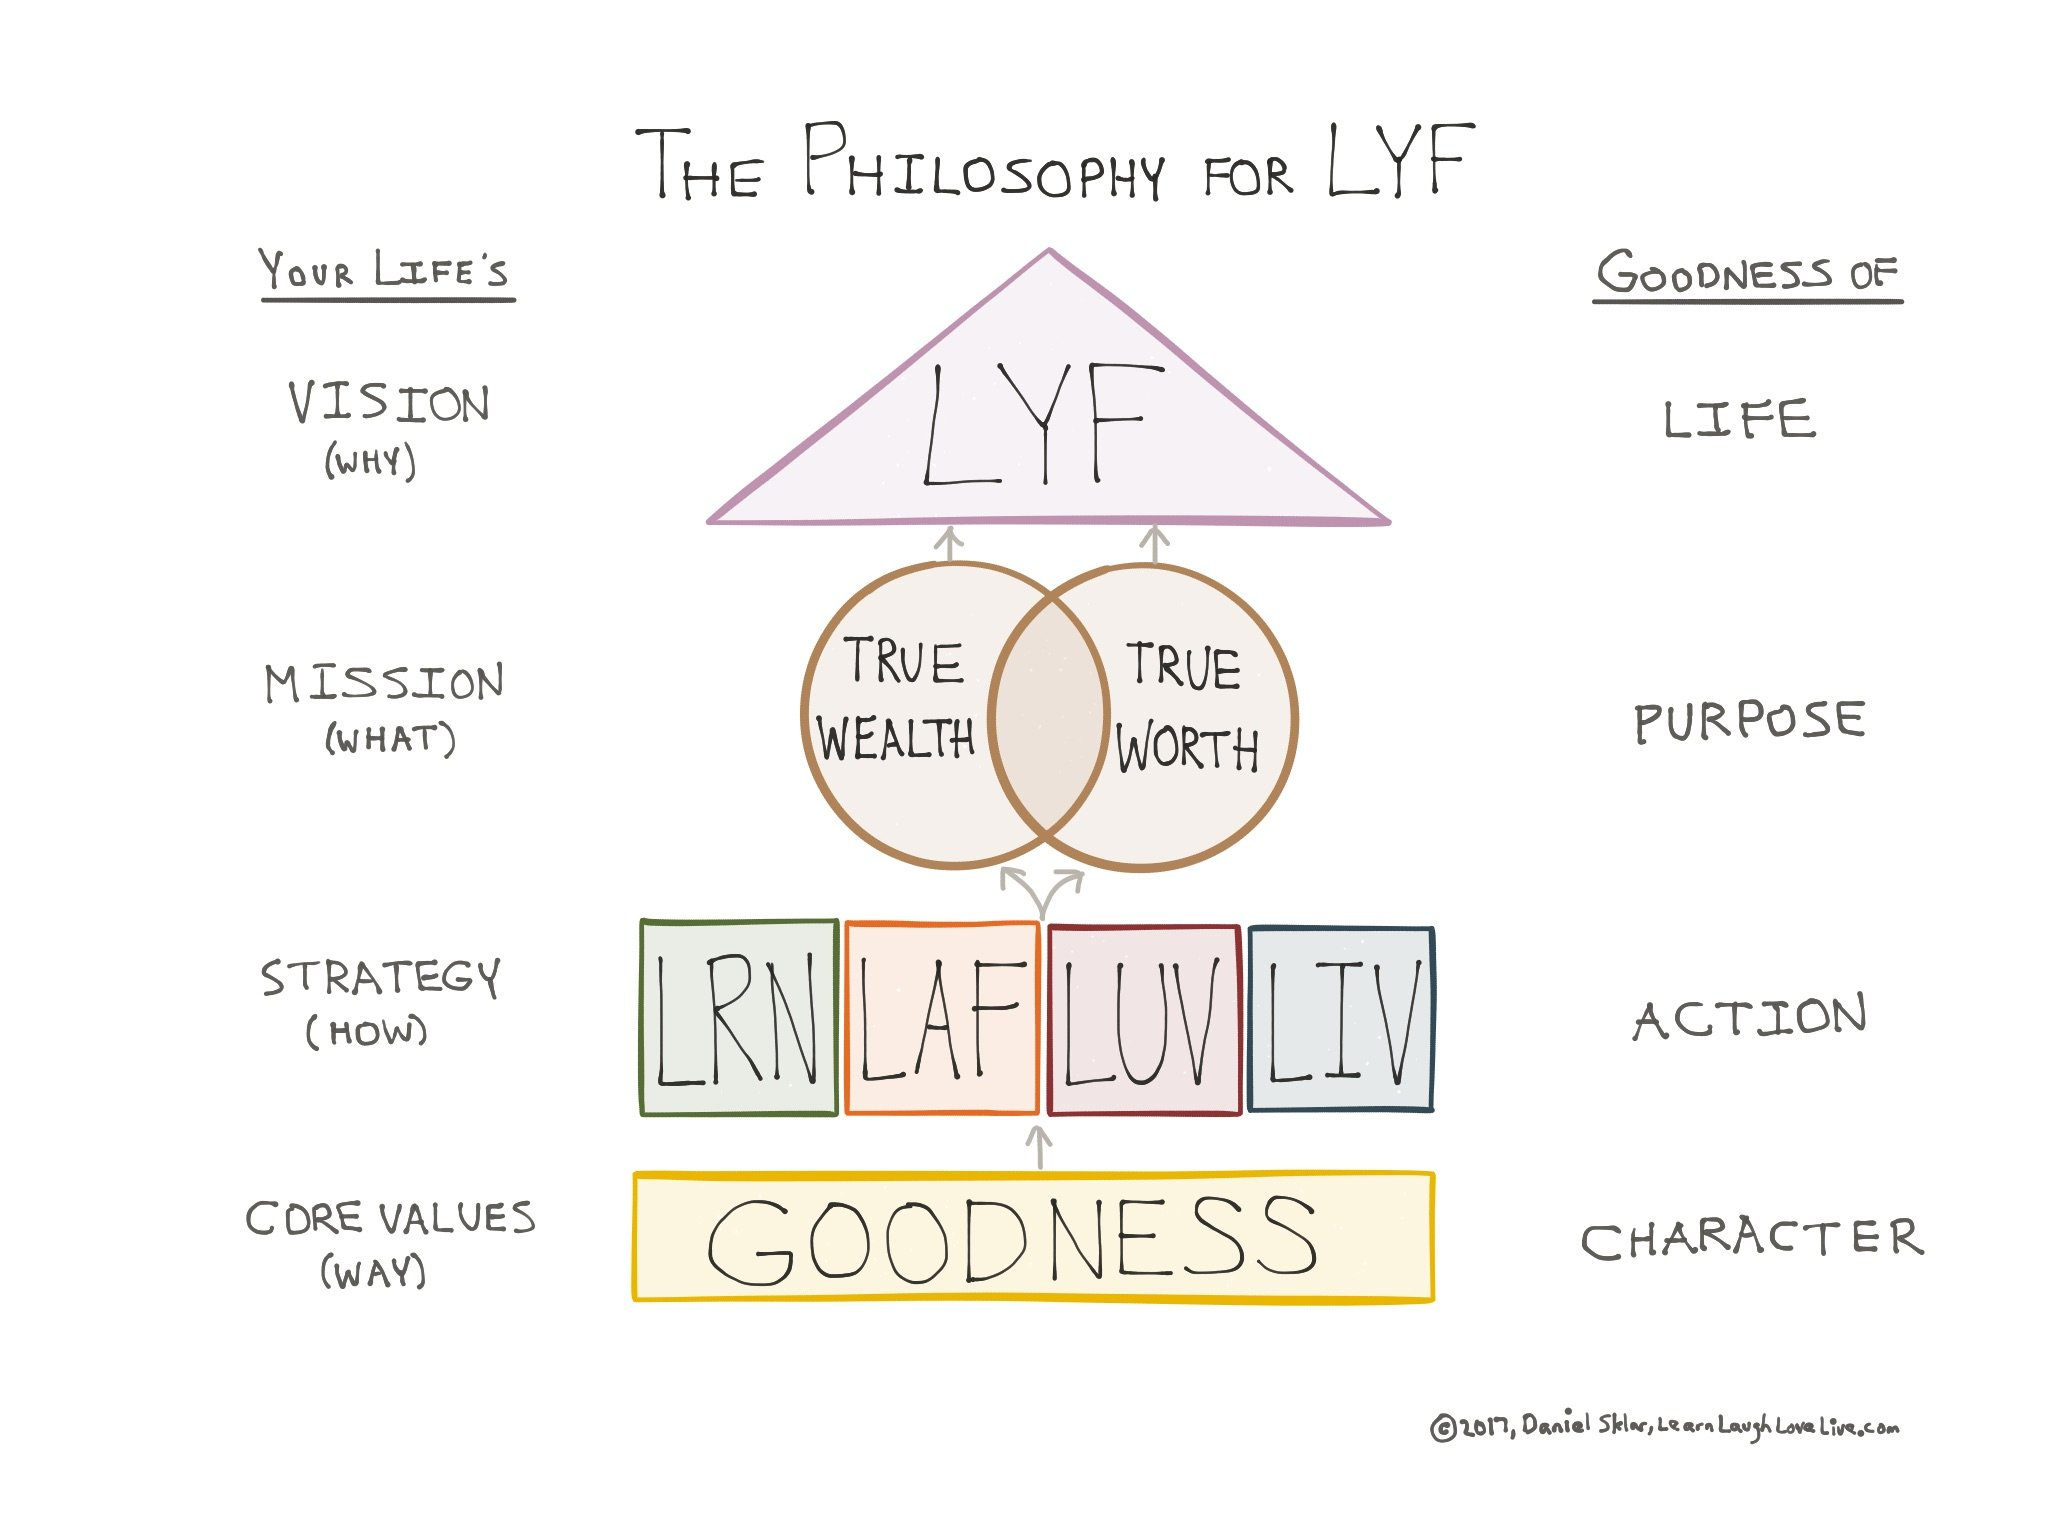 Concepts - Philosophy - learn laugh love live life LRN LAF LUV LIV LYF